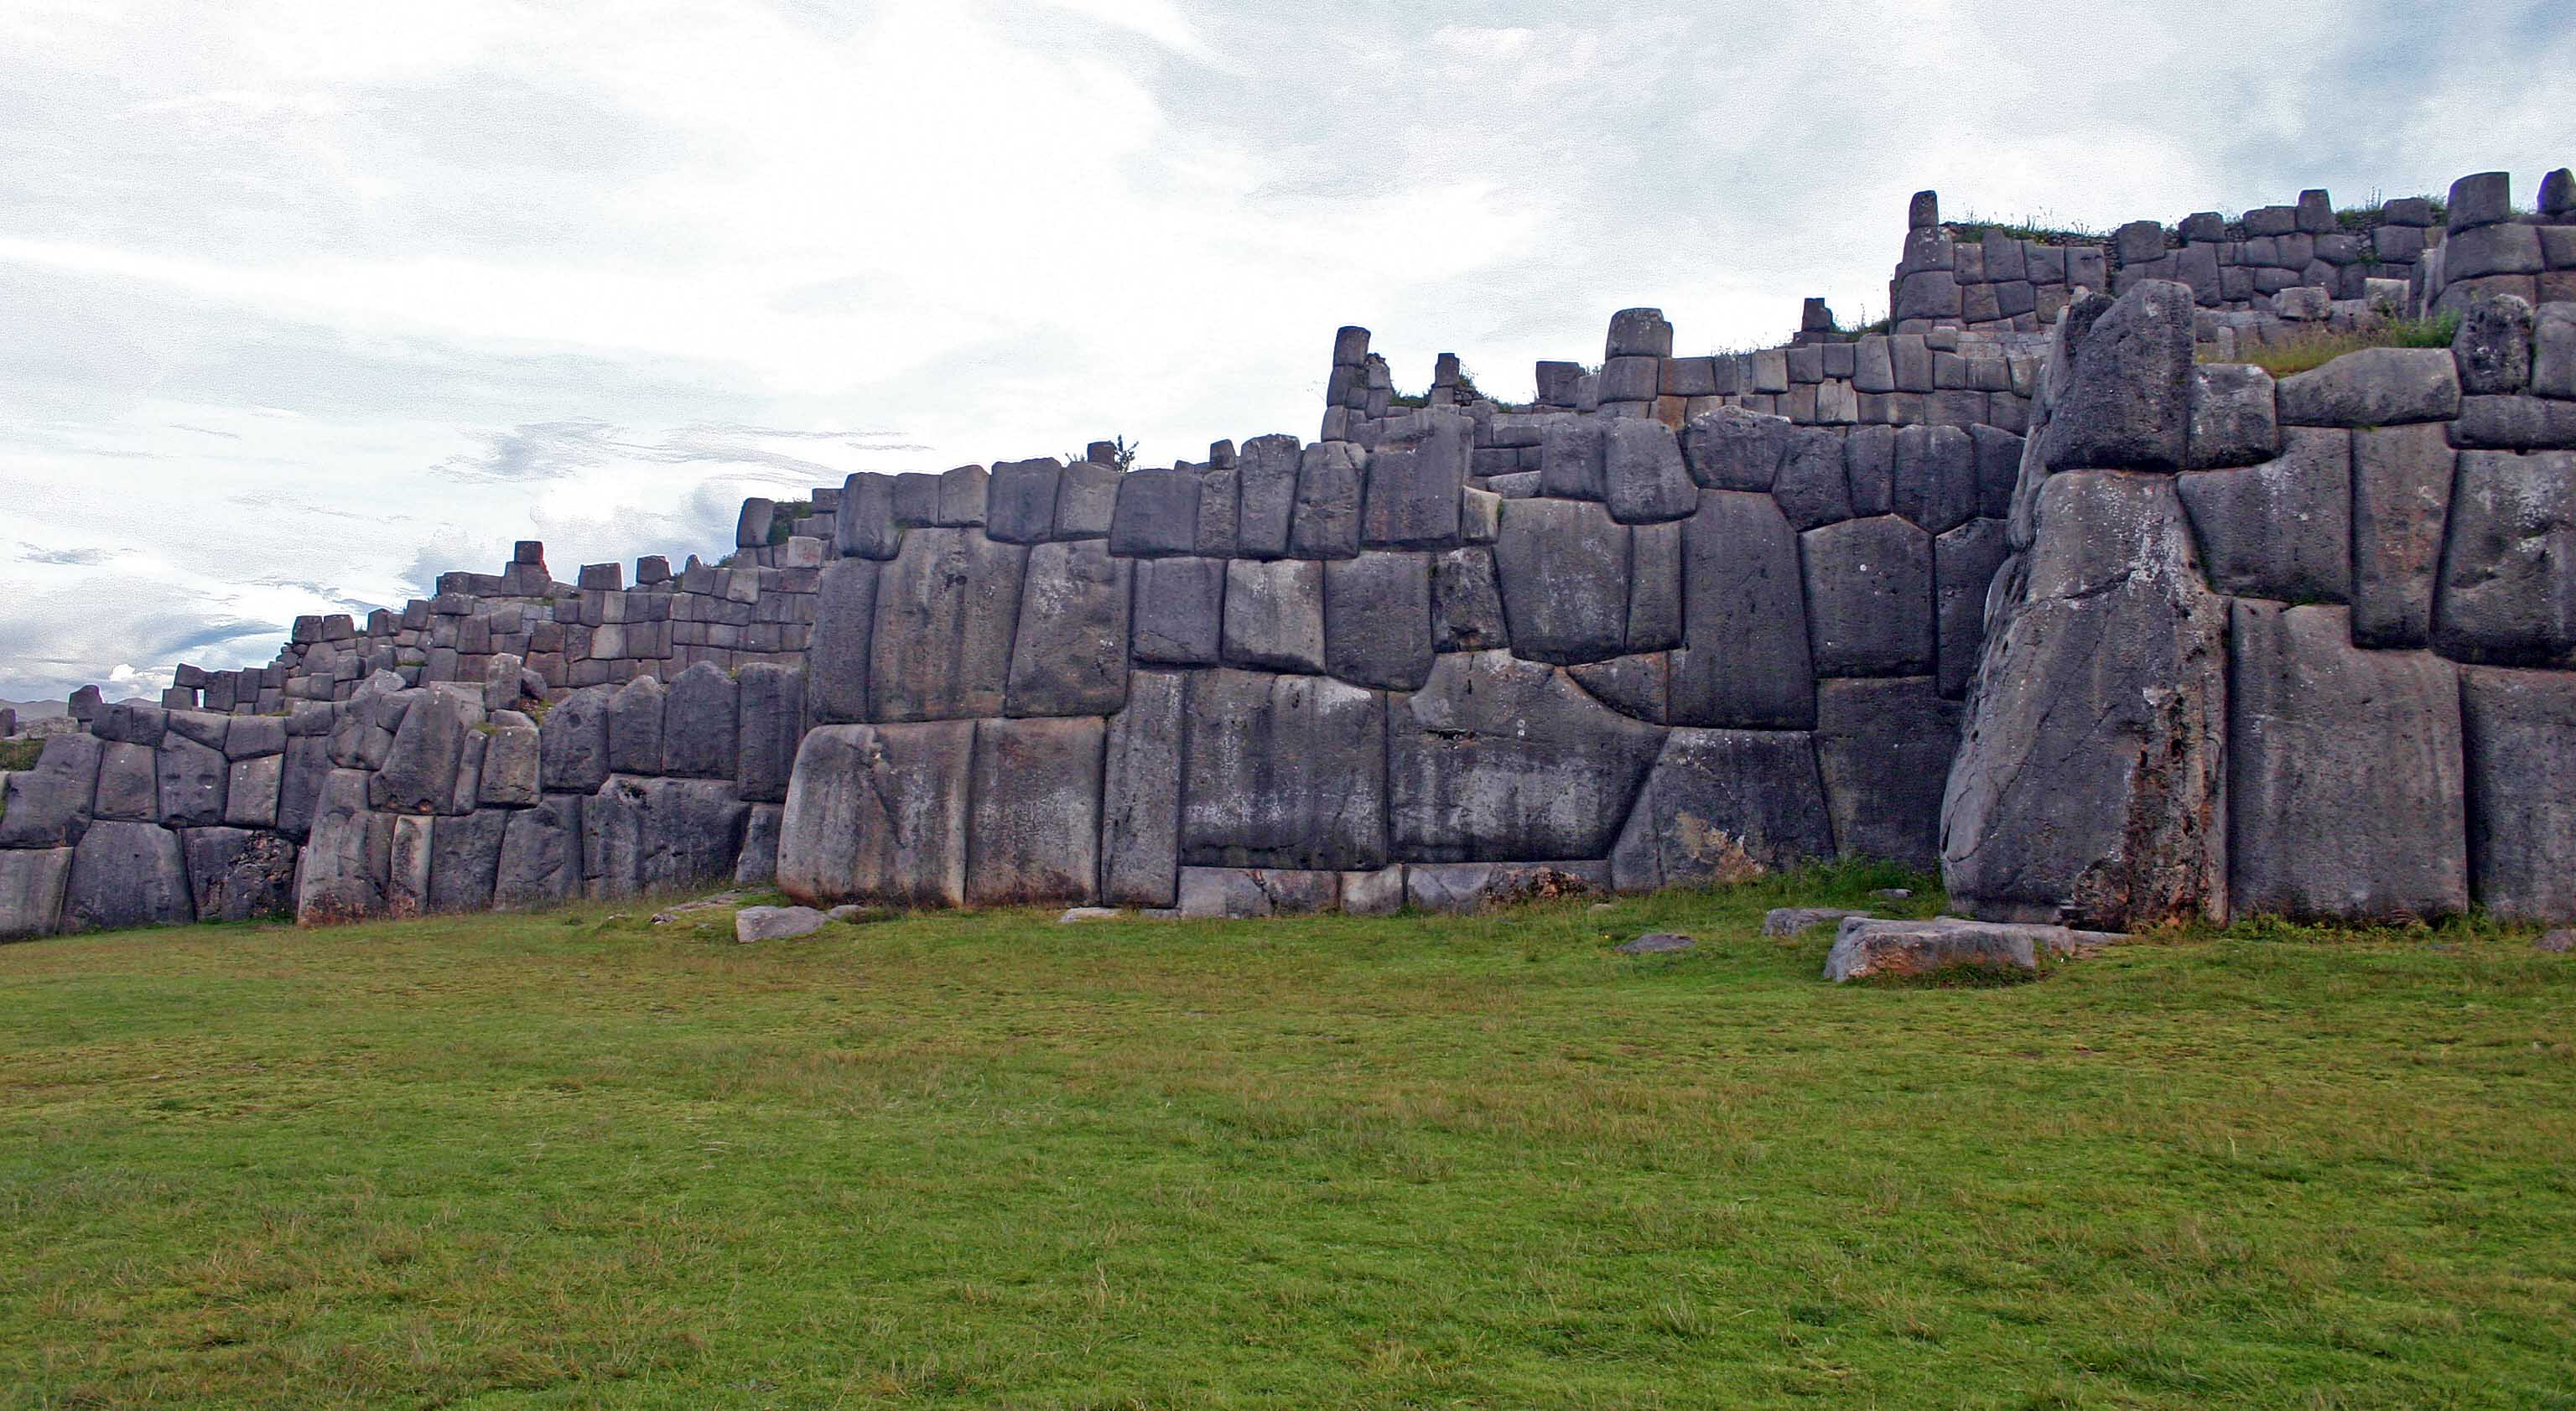 Inca_walls_at_Sacsayhuaman_near_Cuzco_Andes_Mts_Peru_copy.jpg